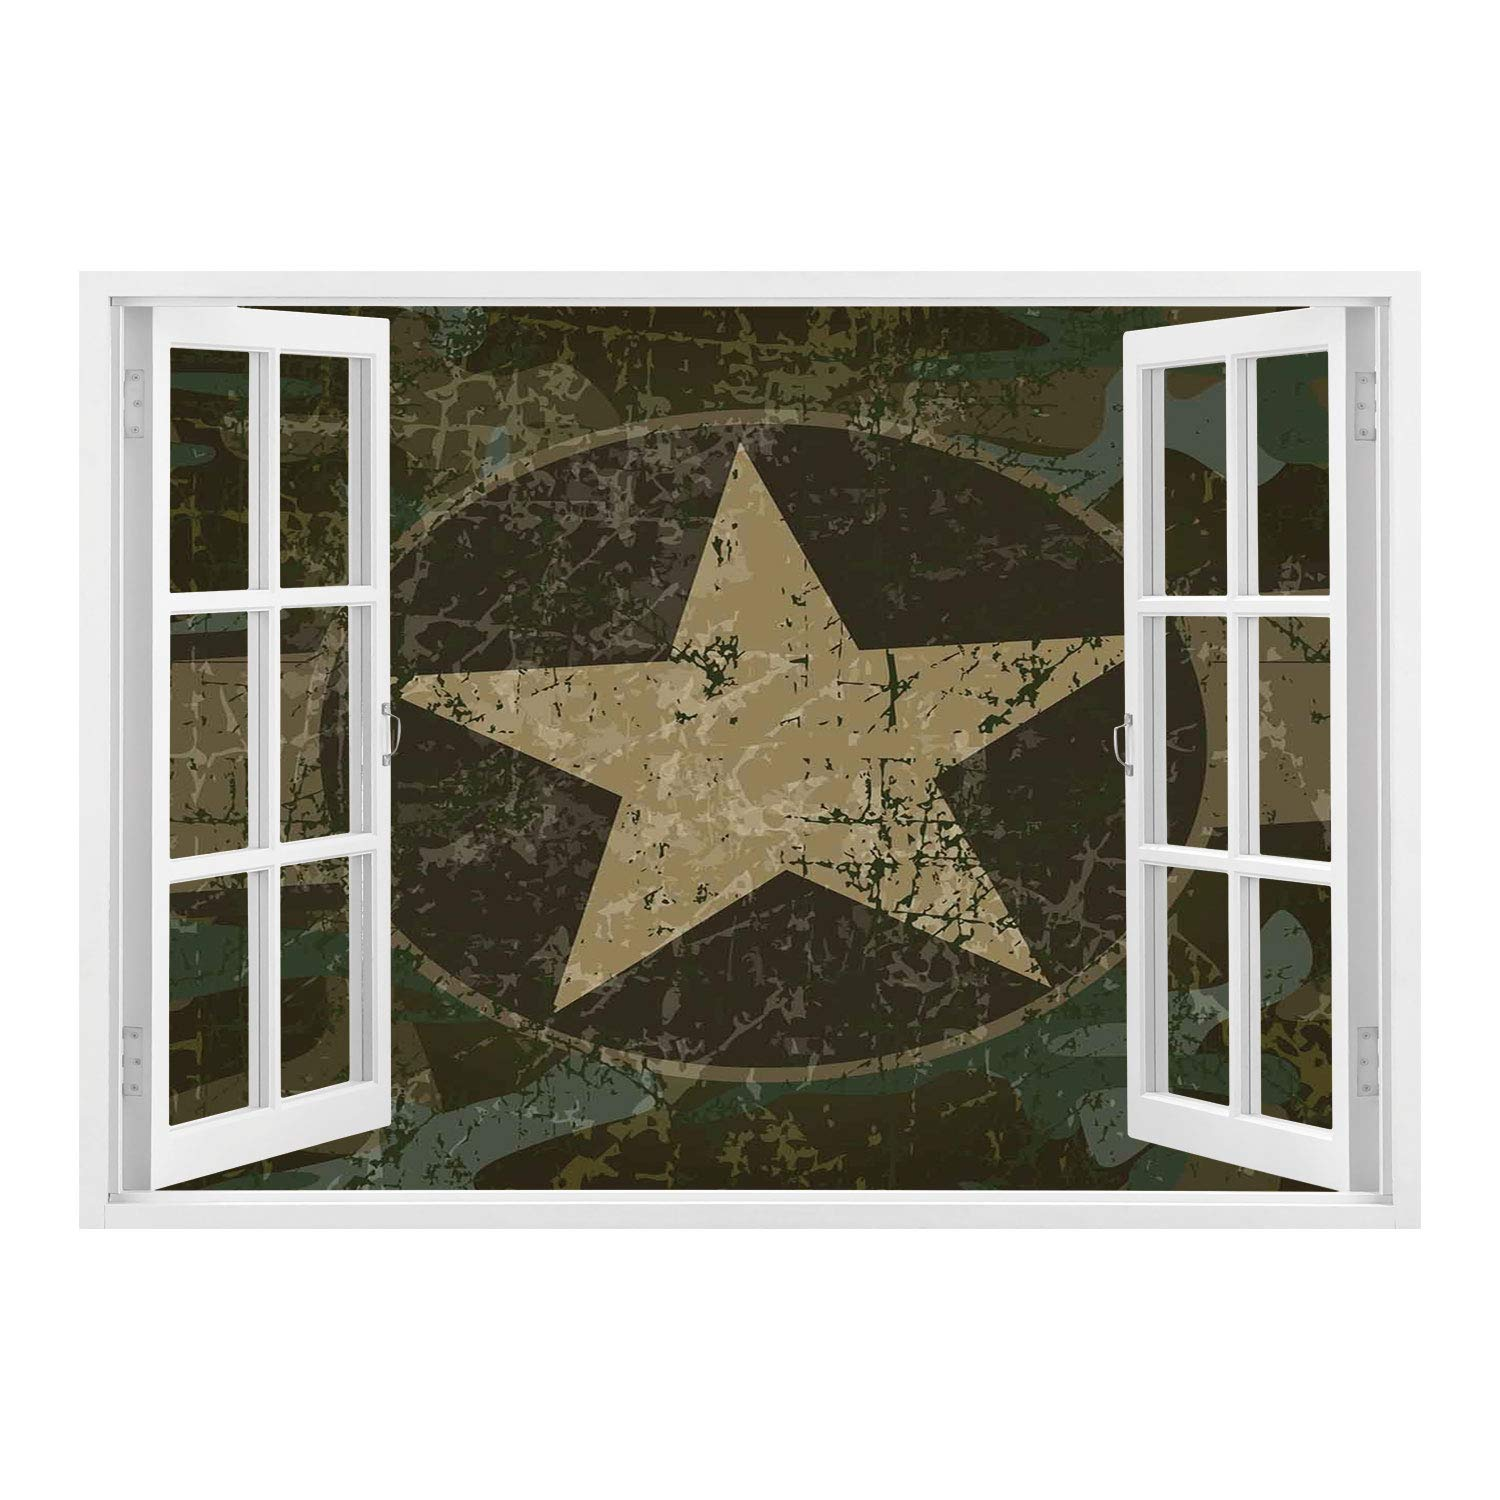 SCOCICI Wall Mural, Removable Sticker, Home Décor/Camo,Grunge Dusty Dirty Design with a Star in Circle Undercover War Theme,Army Green Beige Dark Brown/Wall Sticker Mural